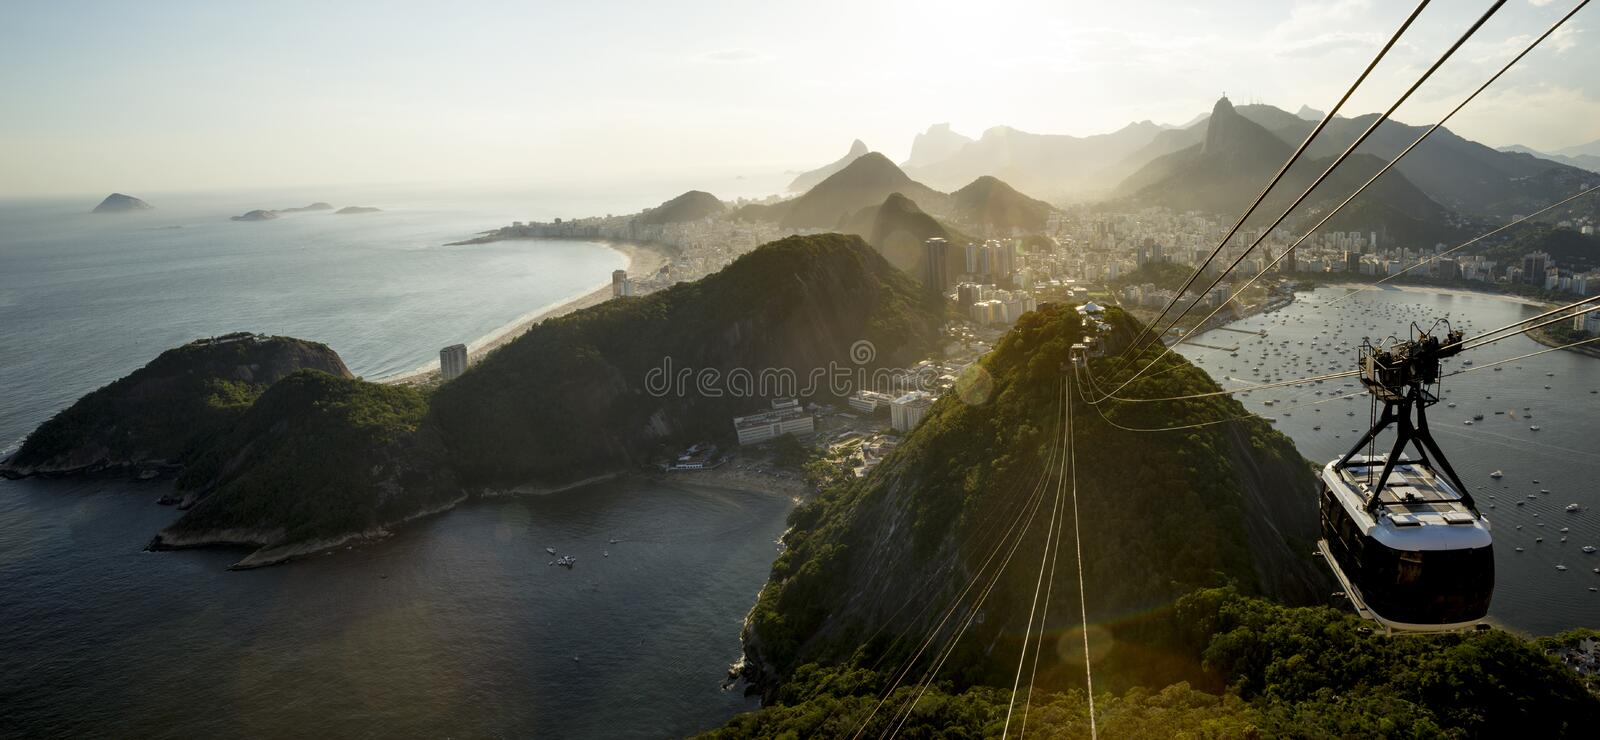 Rio de Janeiro with Sugarloaf mountain, Brazil stock image